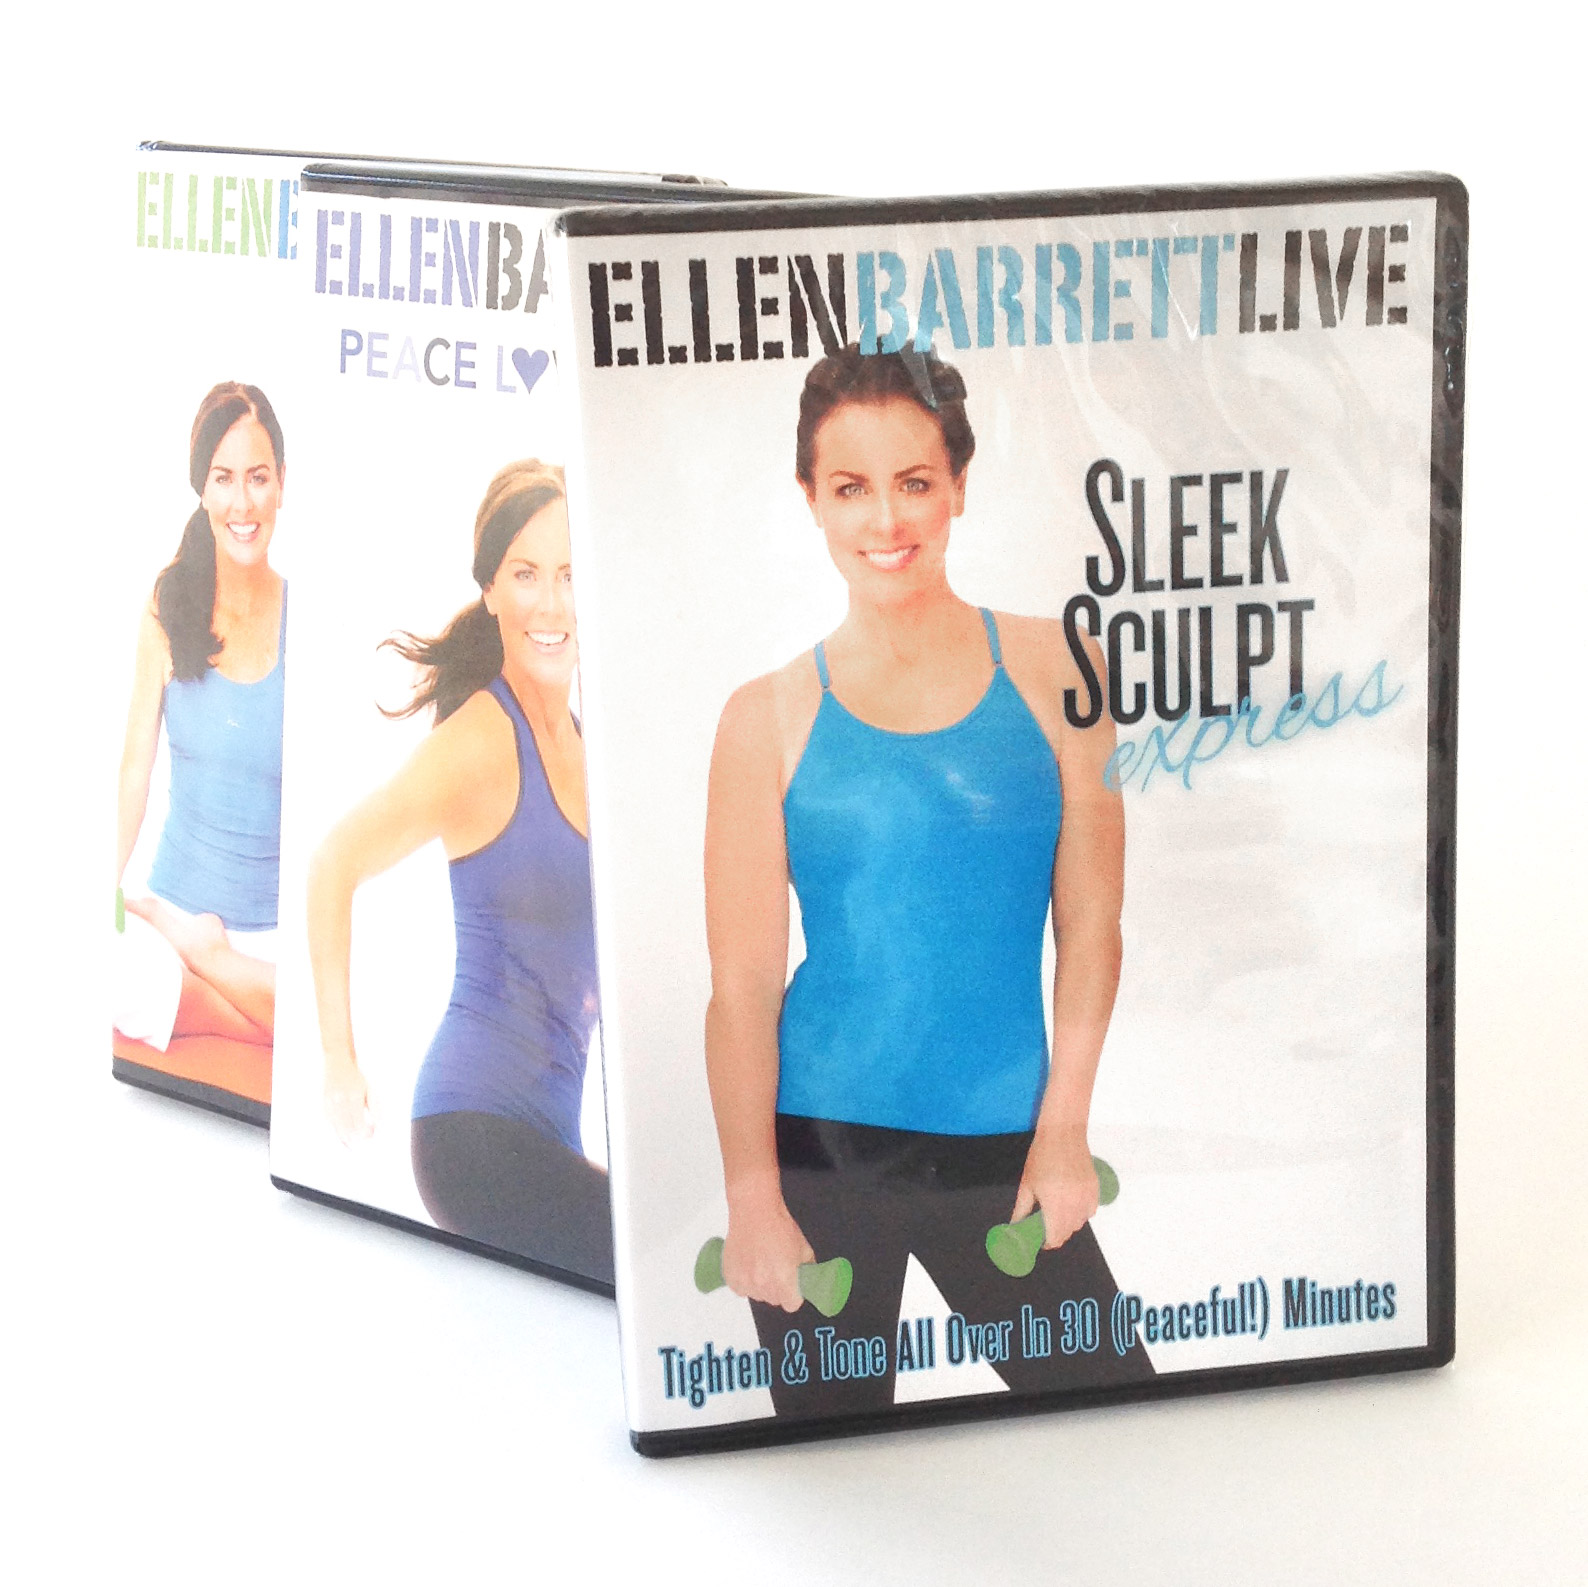 Ellen Barrett - DVD Replication at Affordable Prices